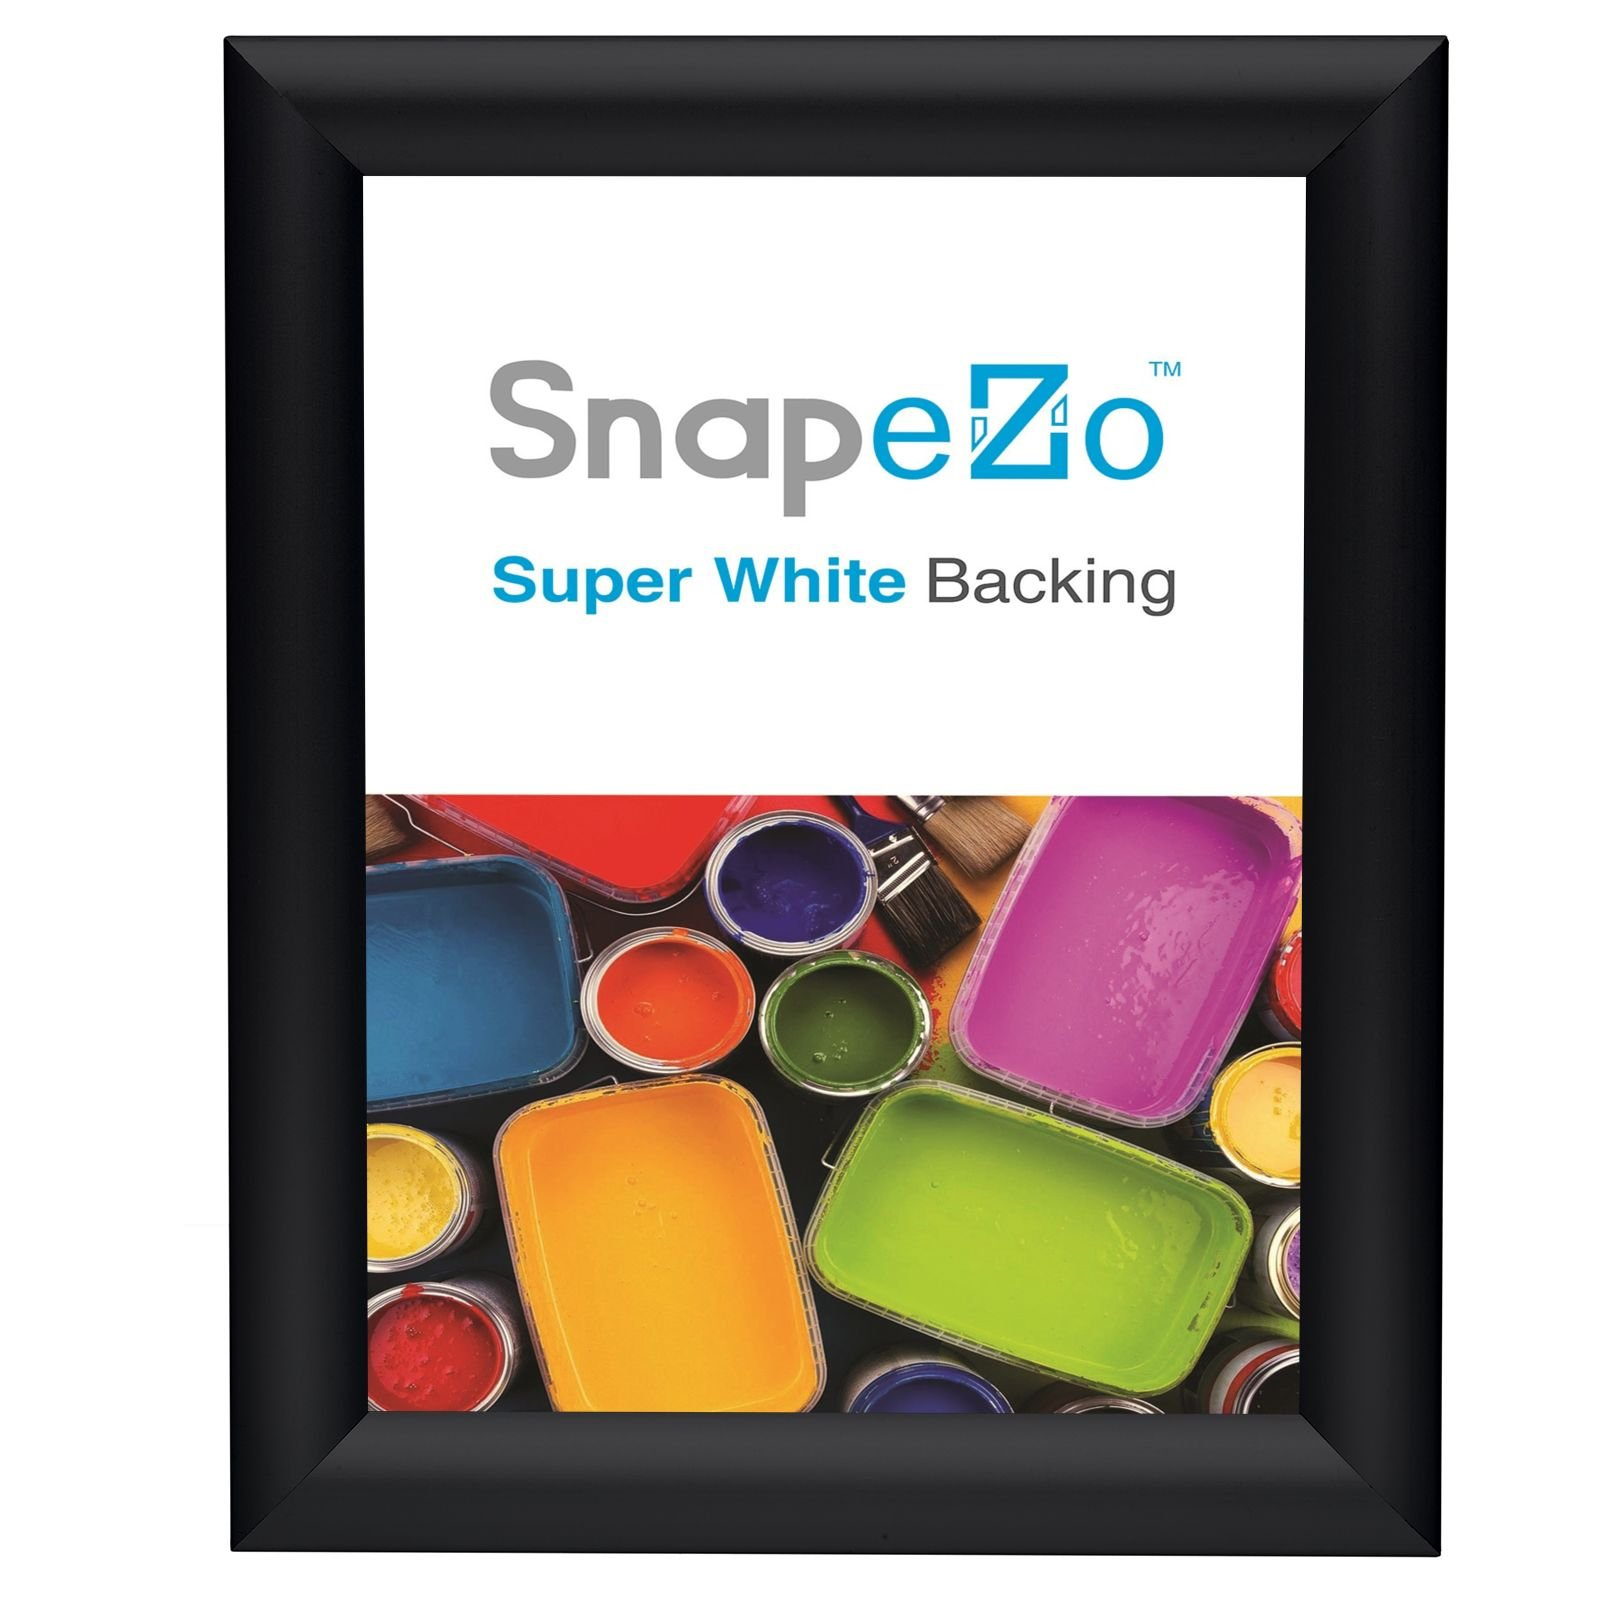 SnapeZo Weather Resistant Black Poster Frame 8.5x11 Inches, 1.38 Inch Outdoor Profile, Outdoor Poster Display Unit by SnapeZo (Image #1)